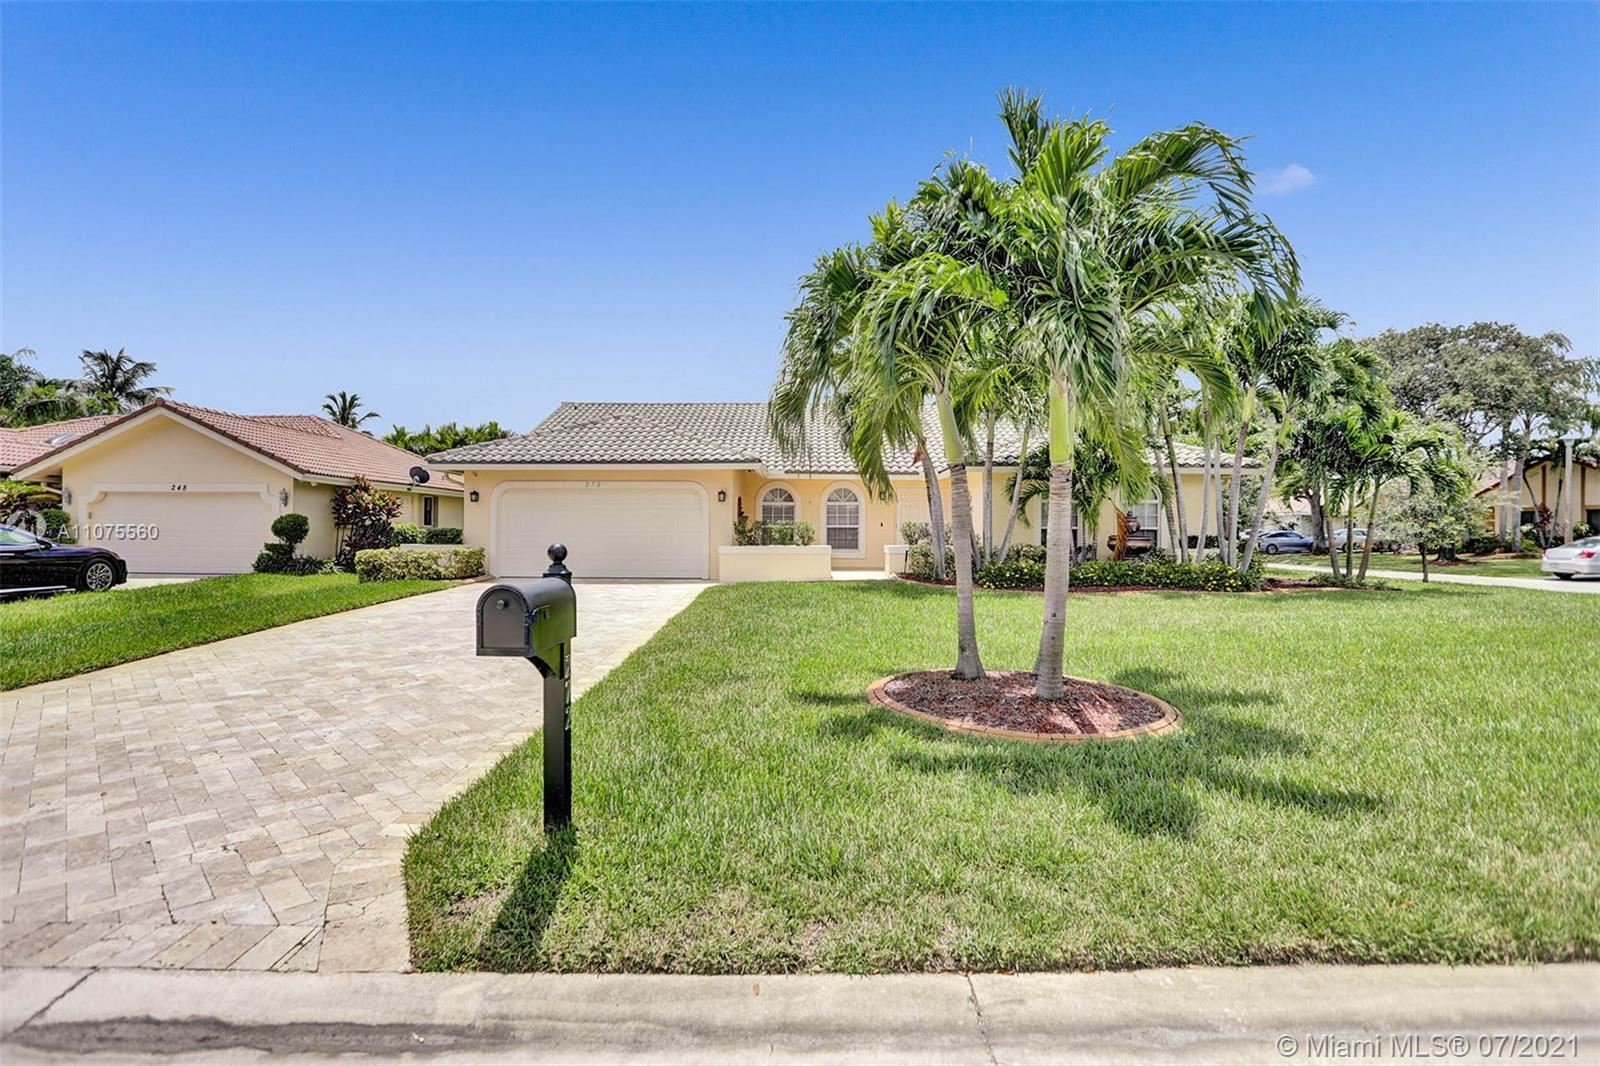 272 NW 121st Ave, Coral Springs, FL 33071 - #: A11075560